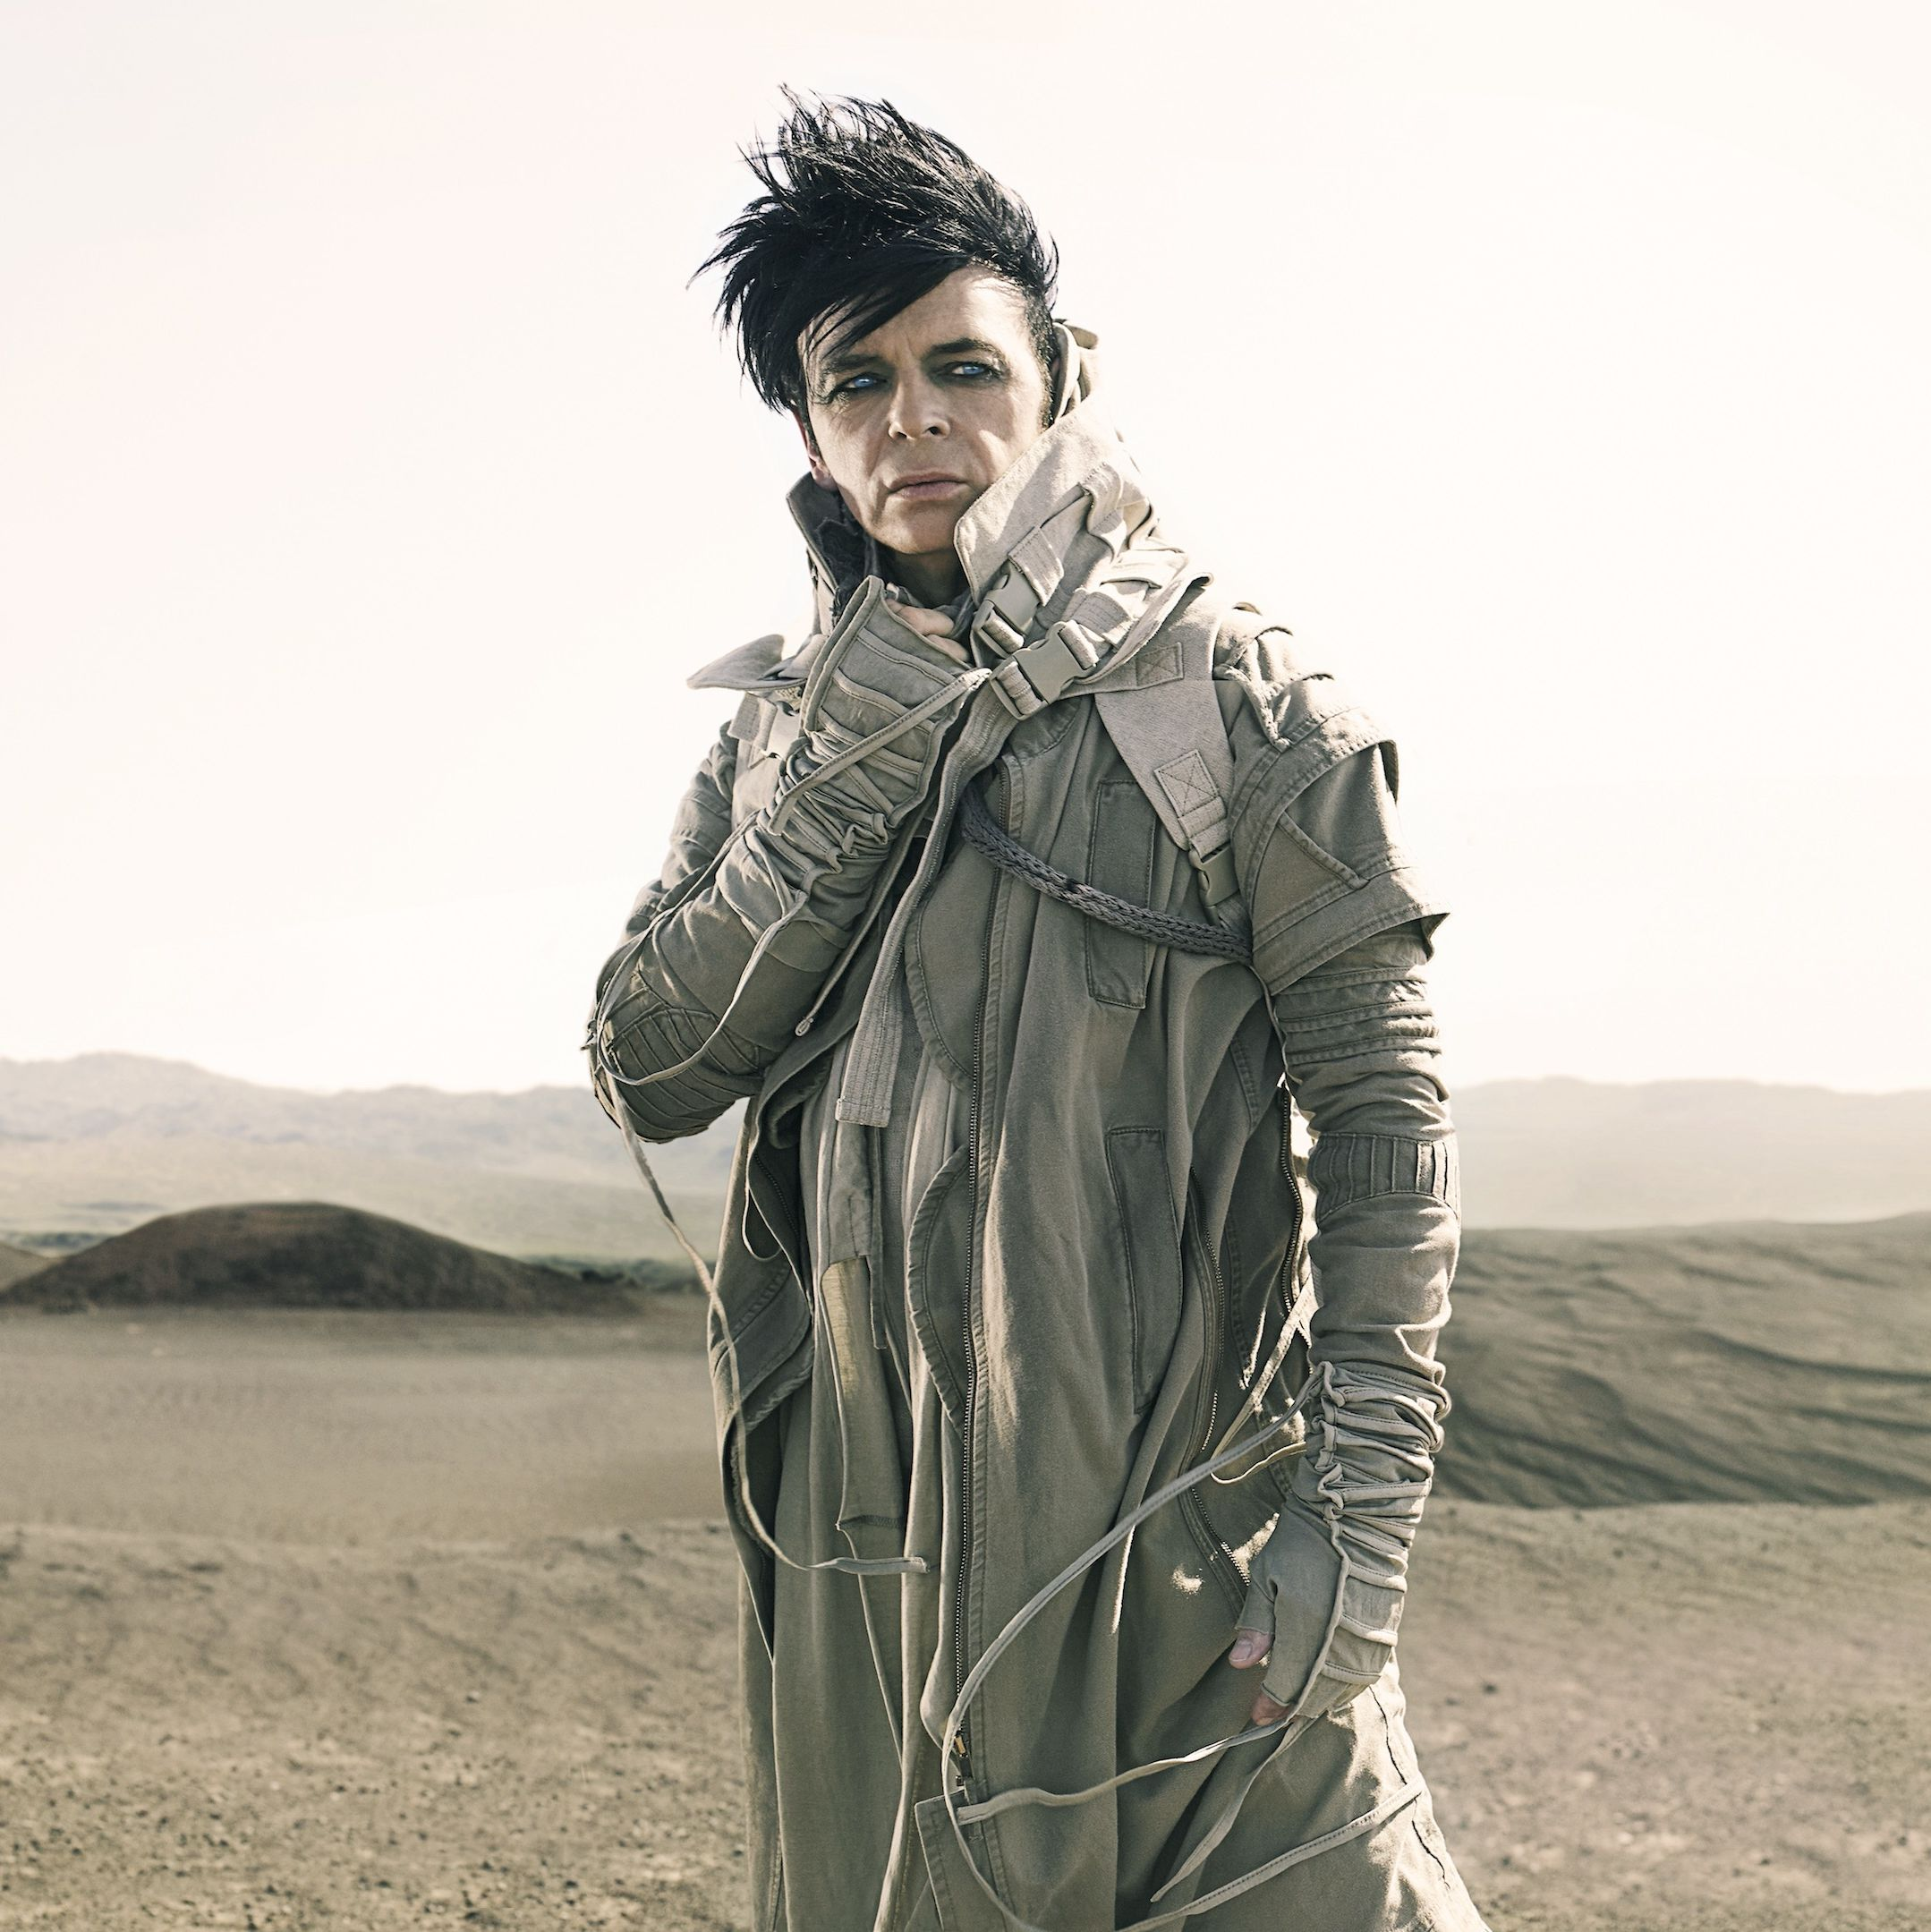 Gary numan photo by km4hrv